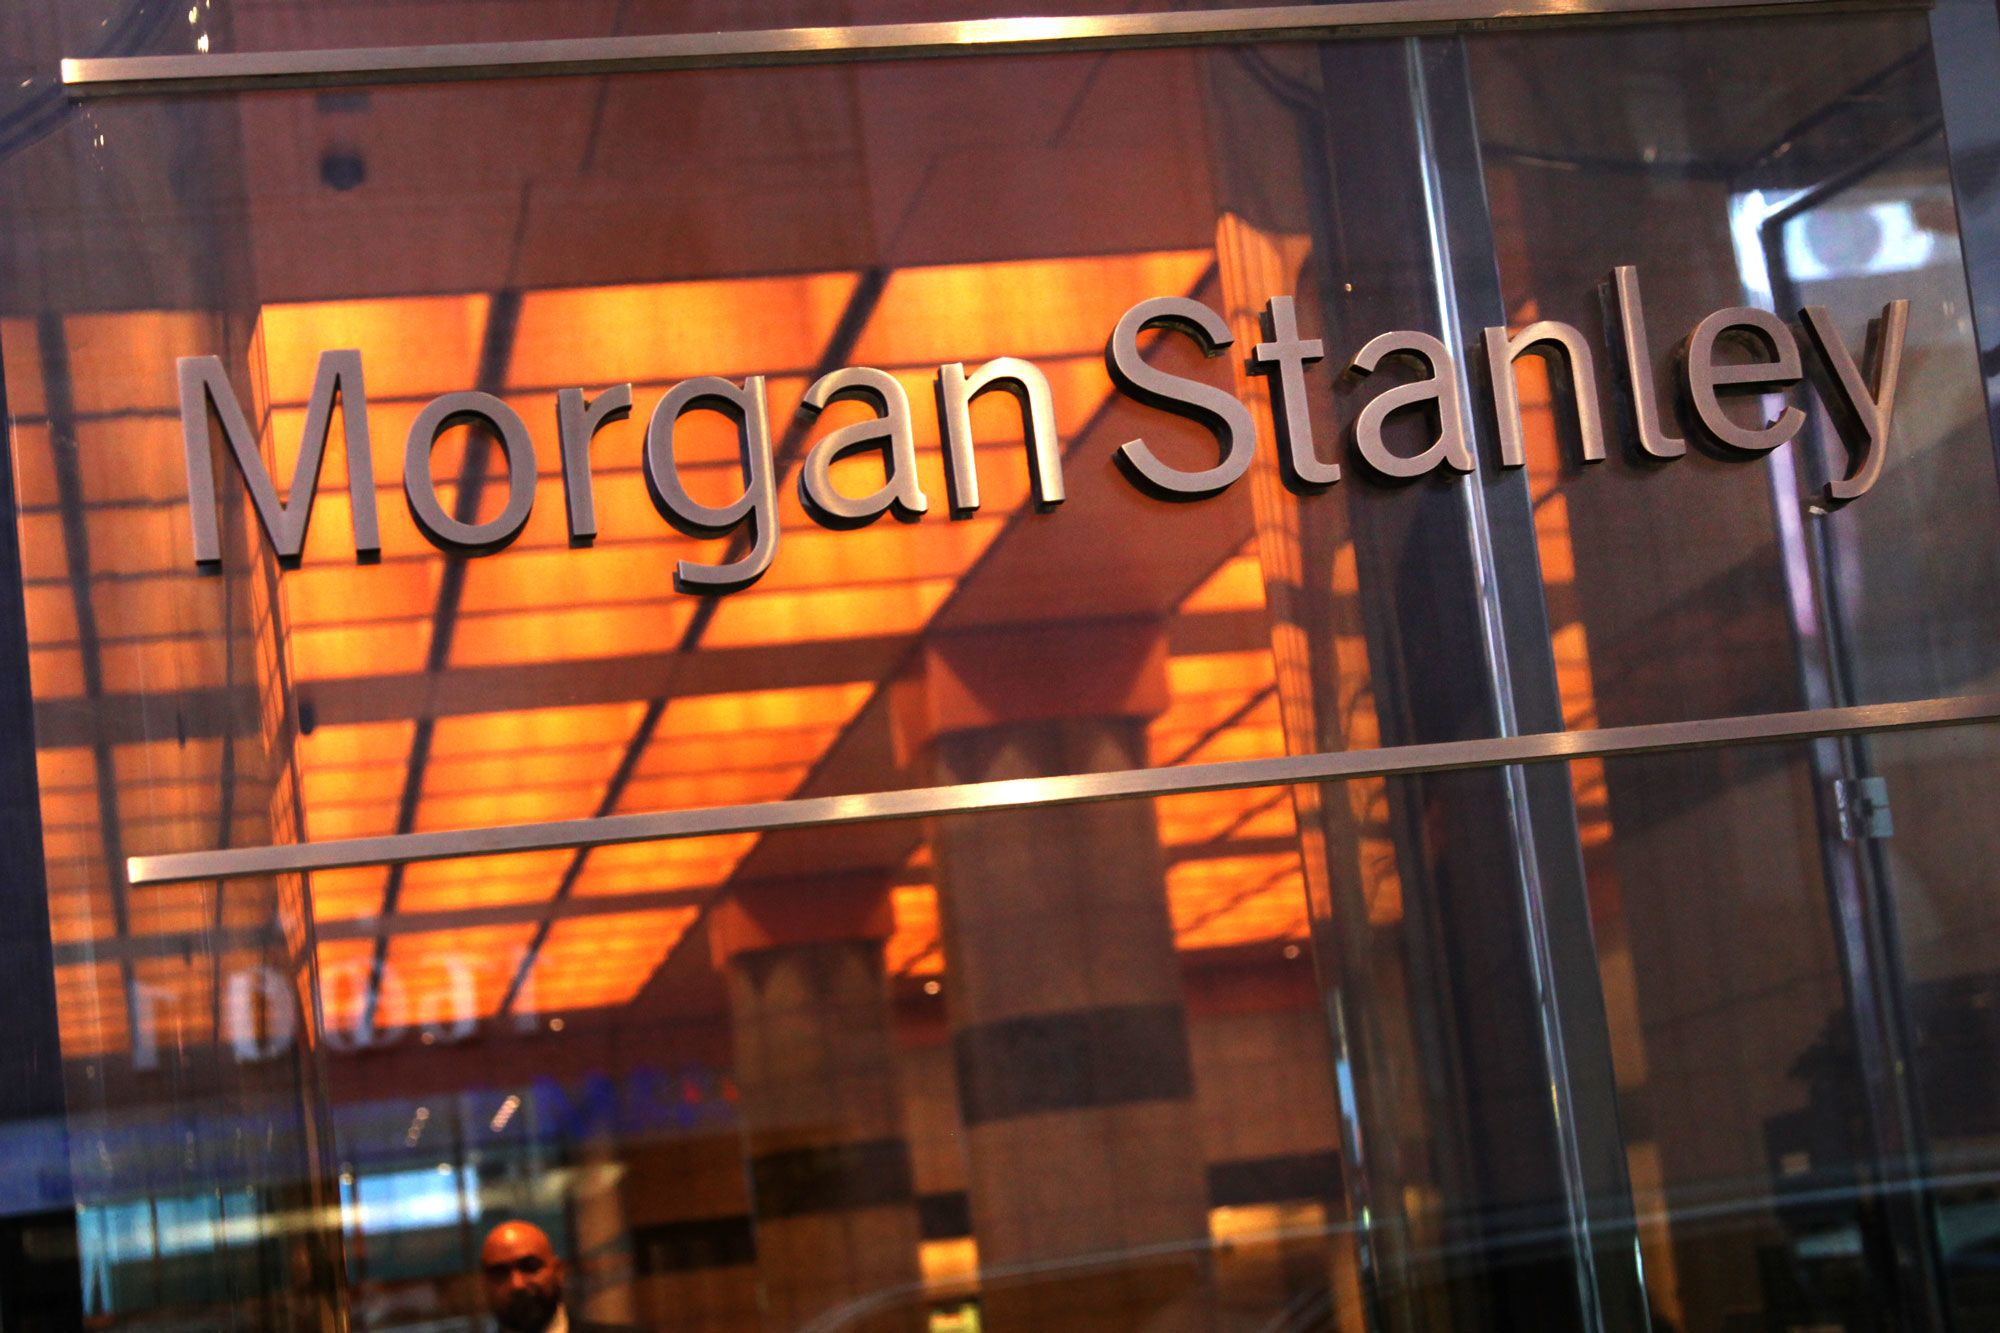 Morgan Stanley offers new tool to let advisors, investors measure sustainable investing goals